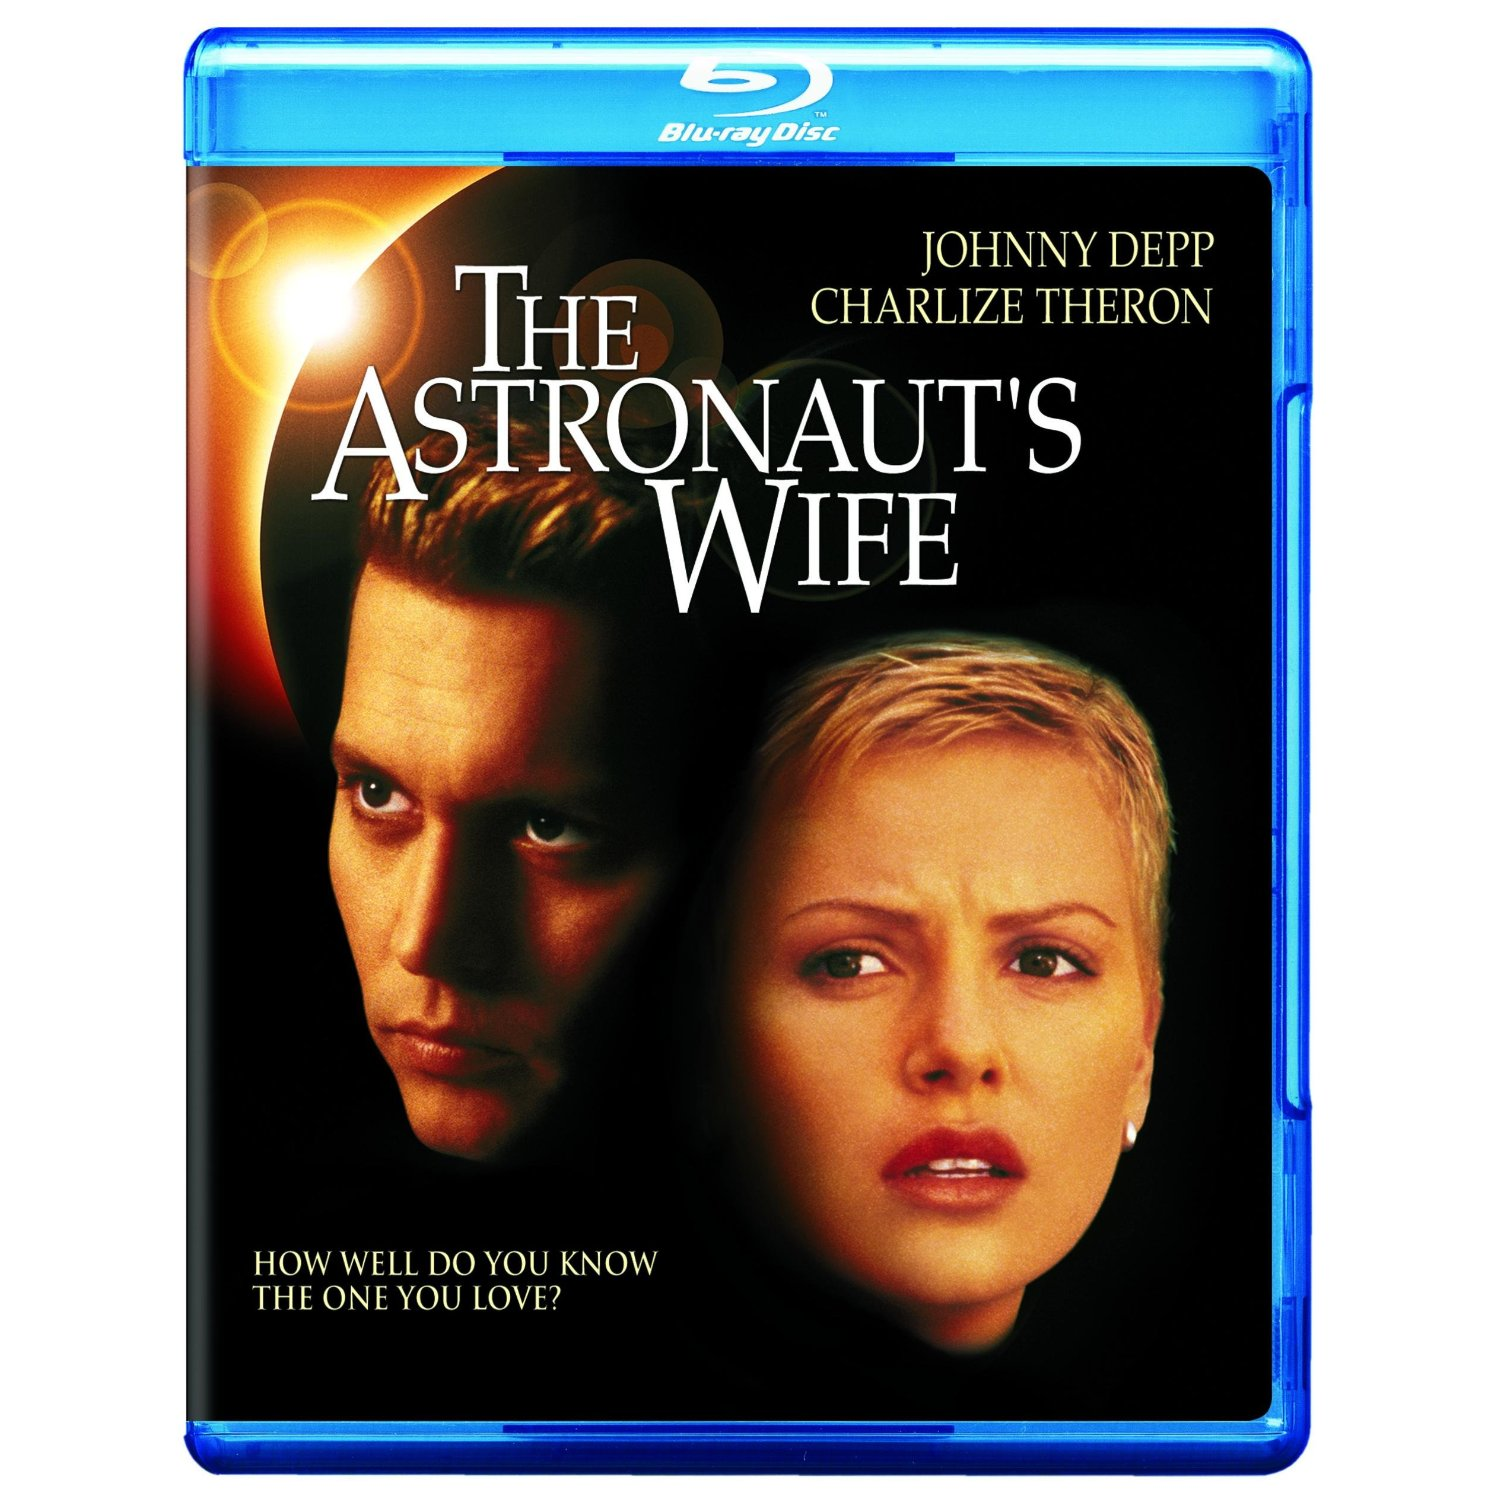 The Astronaut's Wife on Blu-ray